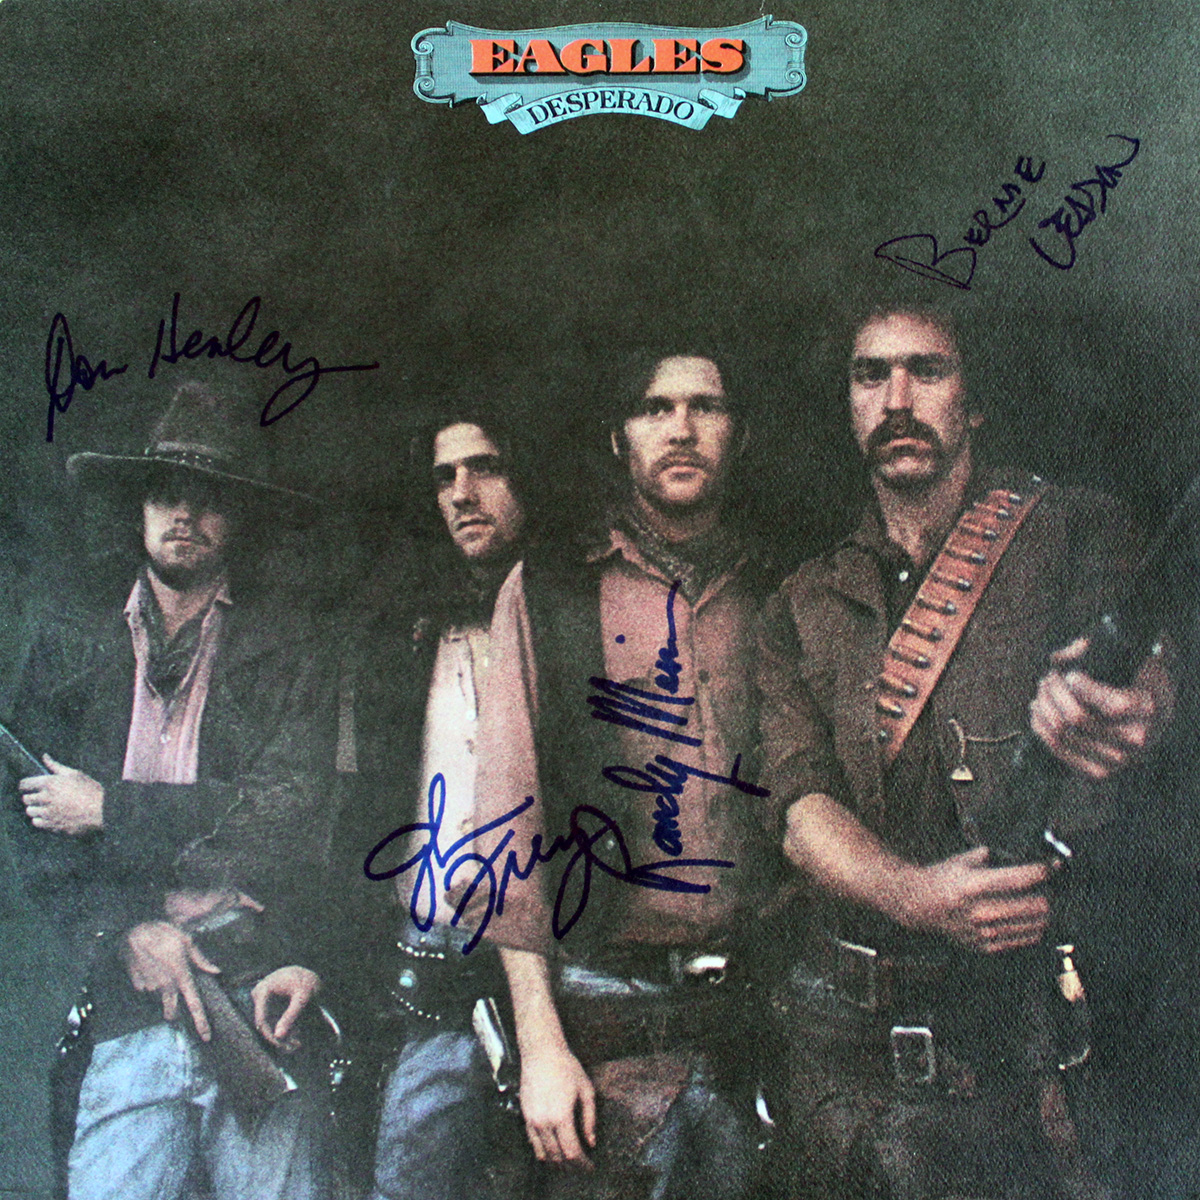 Eagles LP - Desperado #2